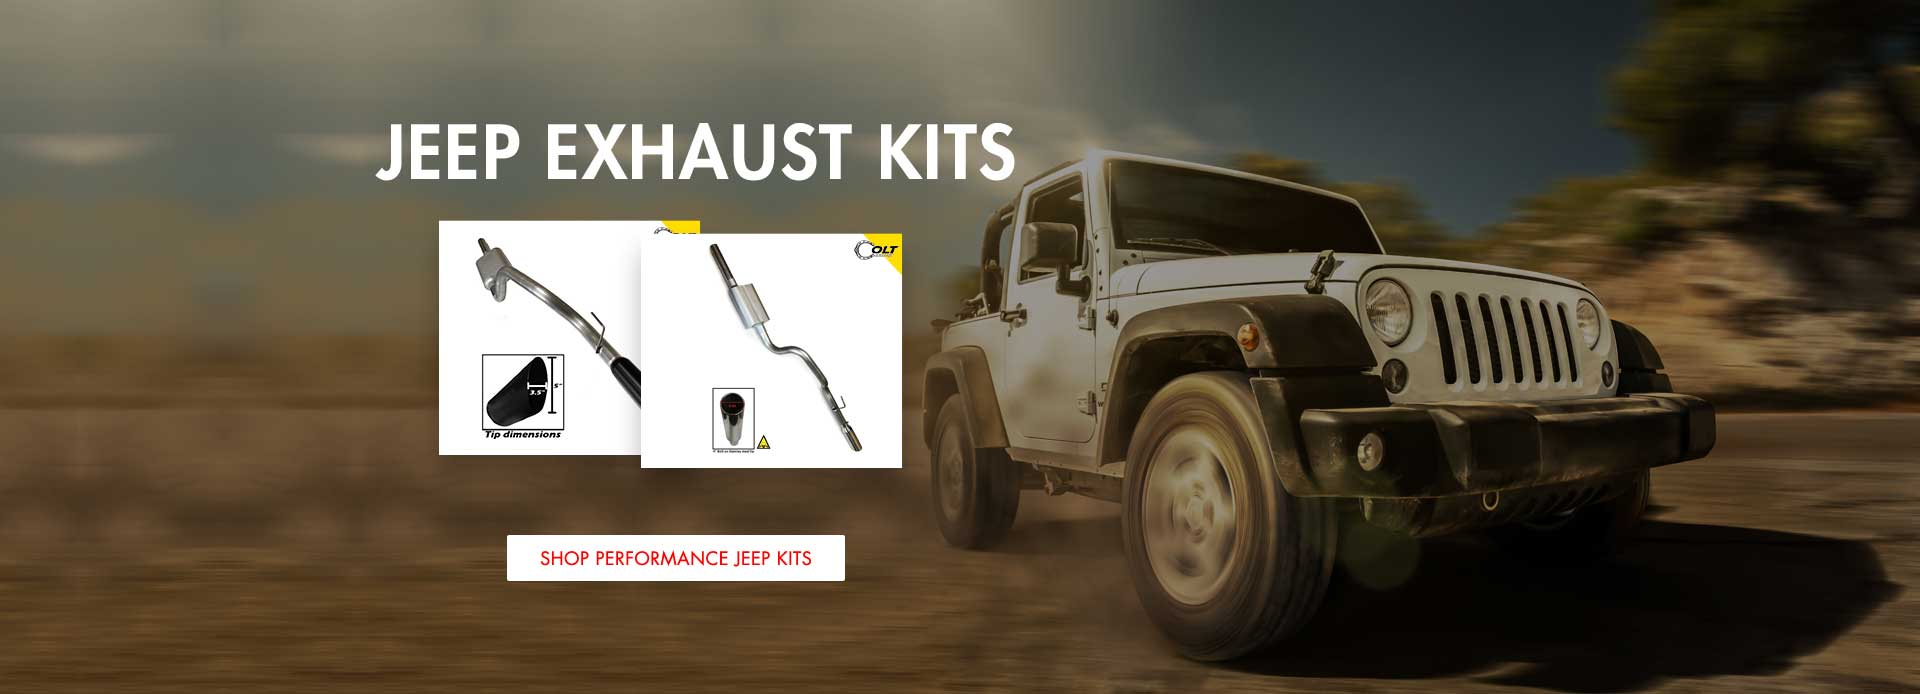 Jeep Exhaust Kits